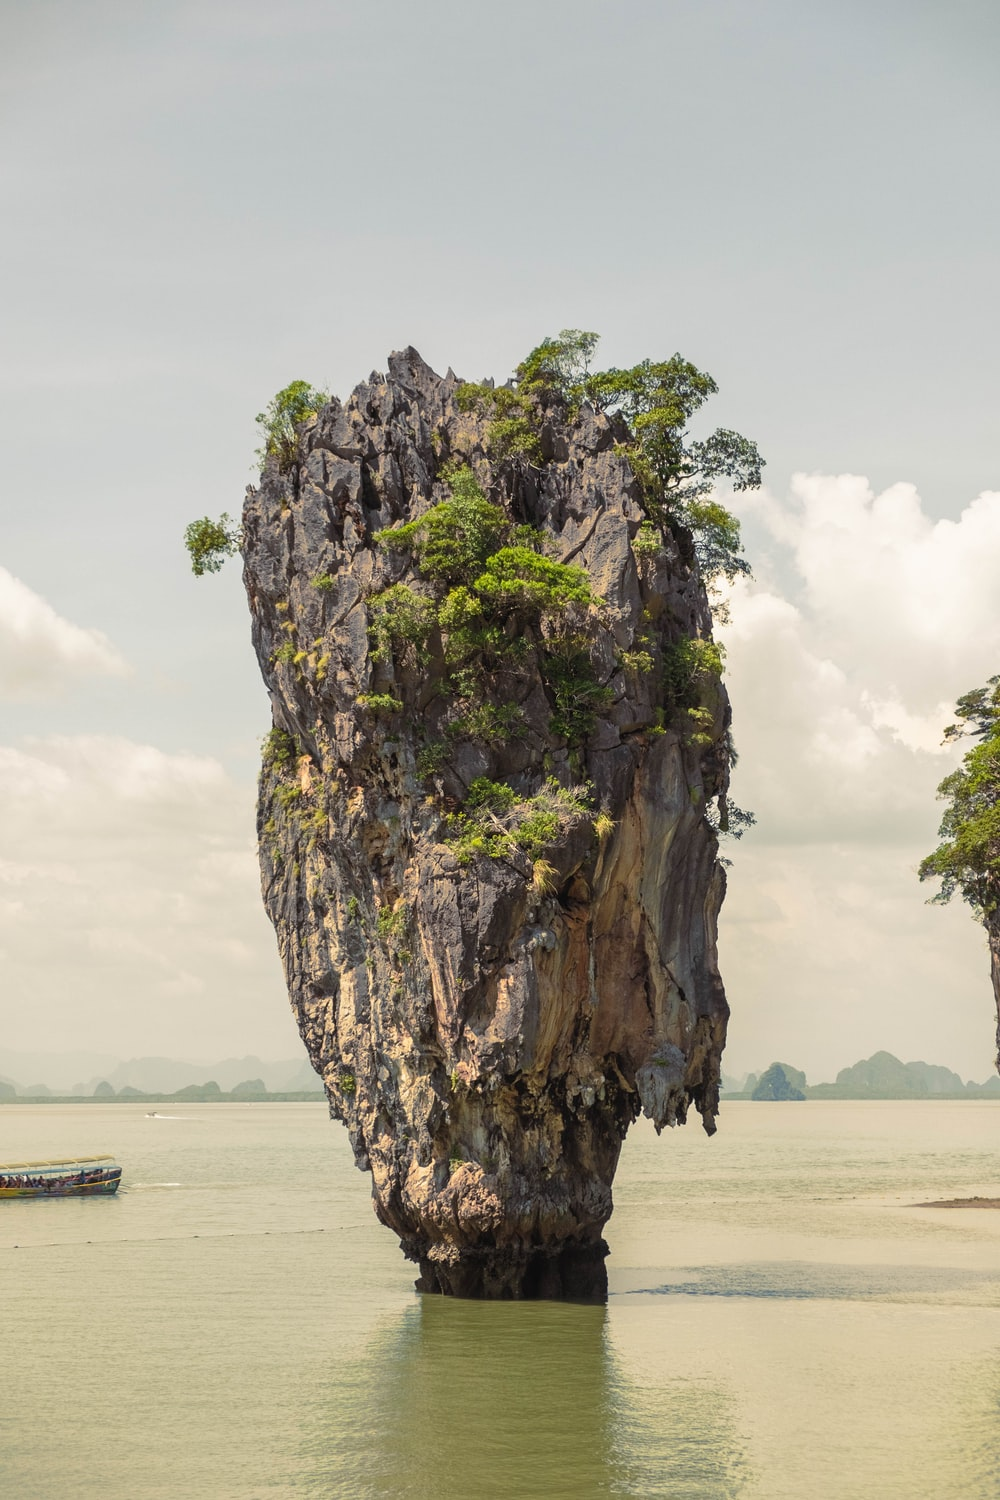 landscape photography of Thailand Khao Phing Kan island